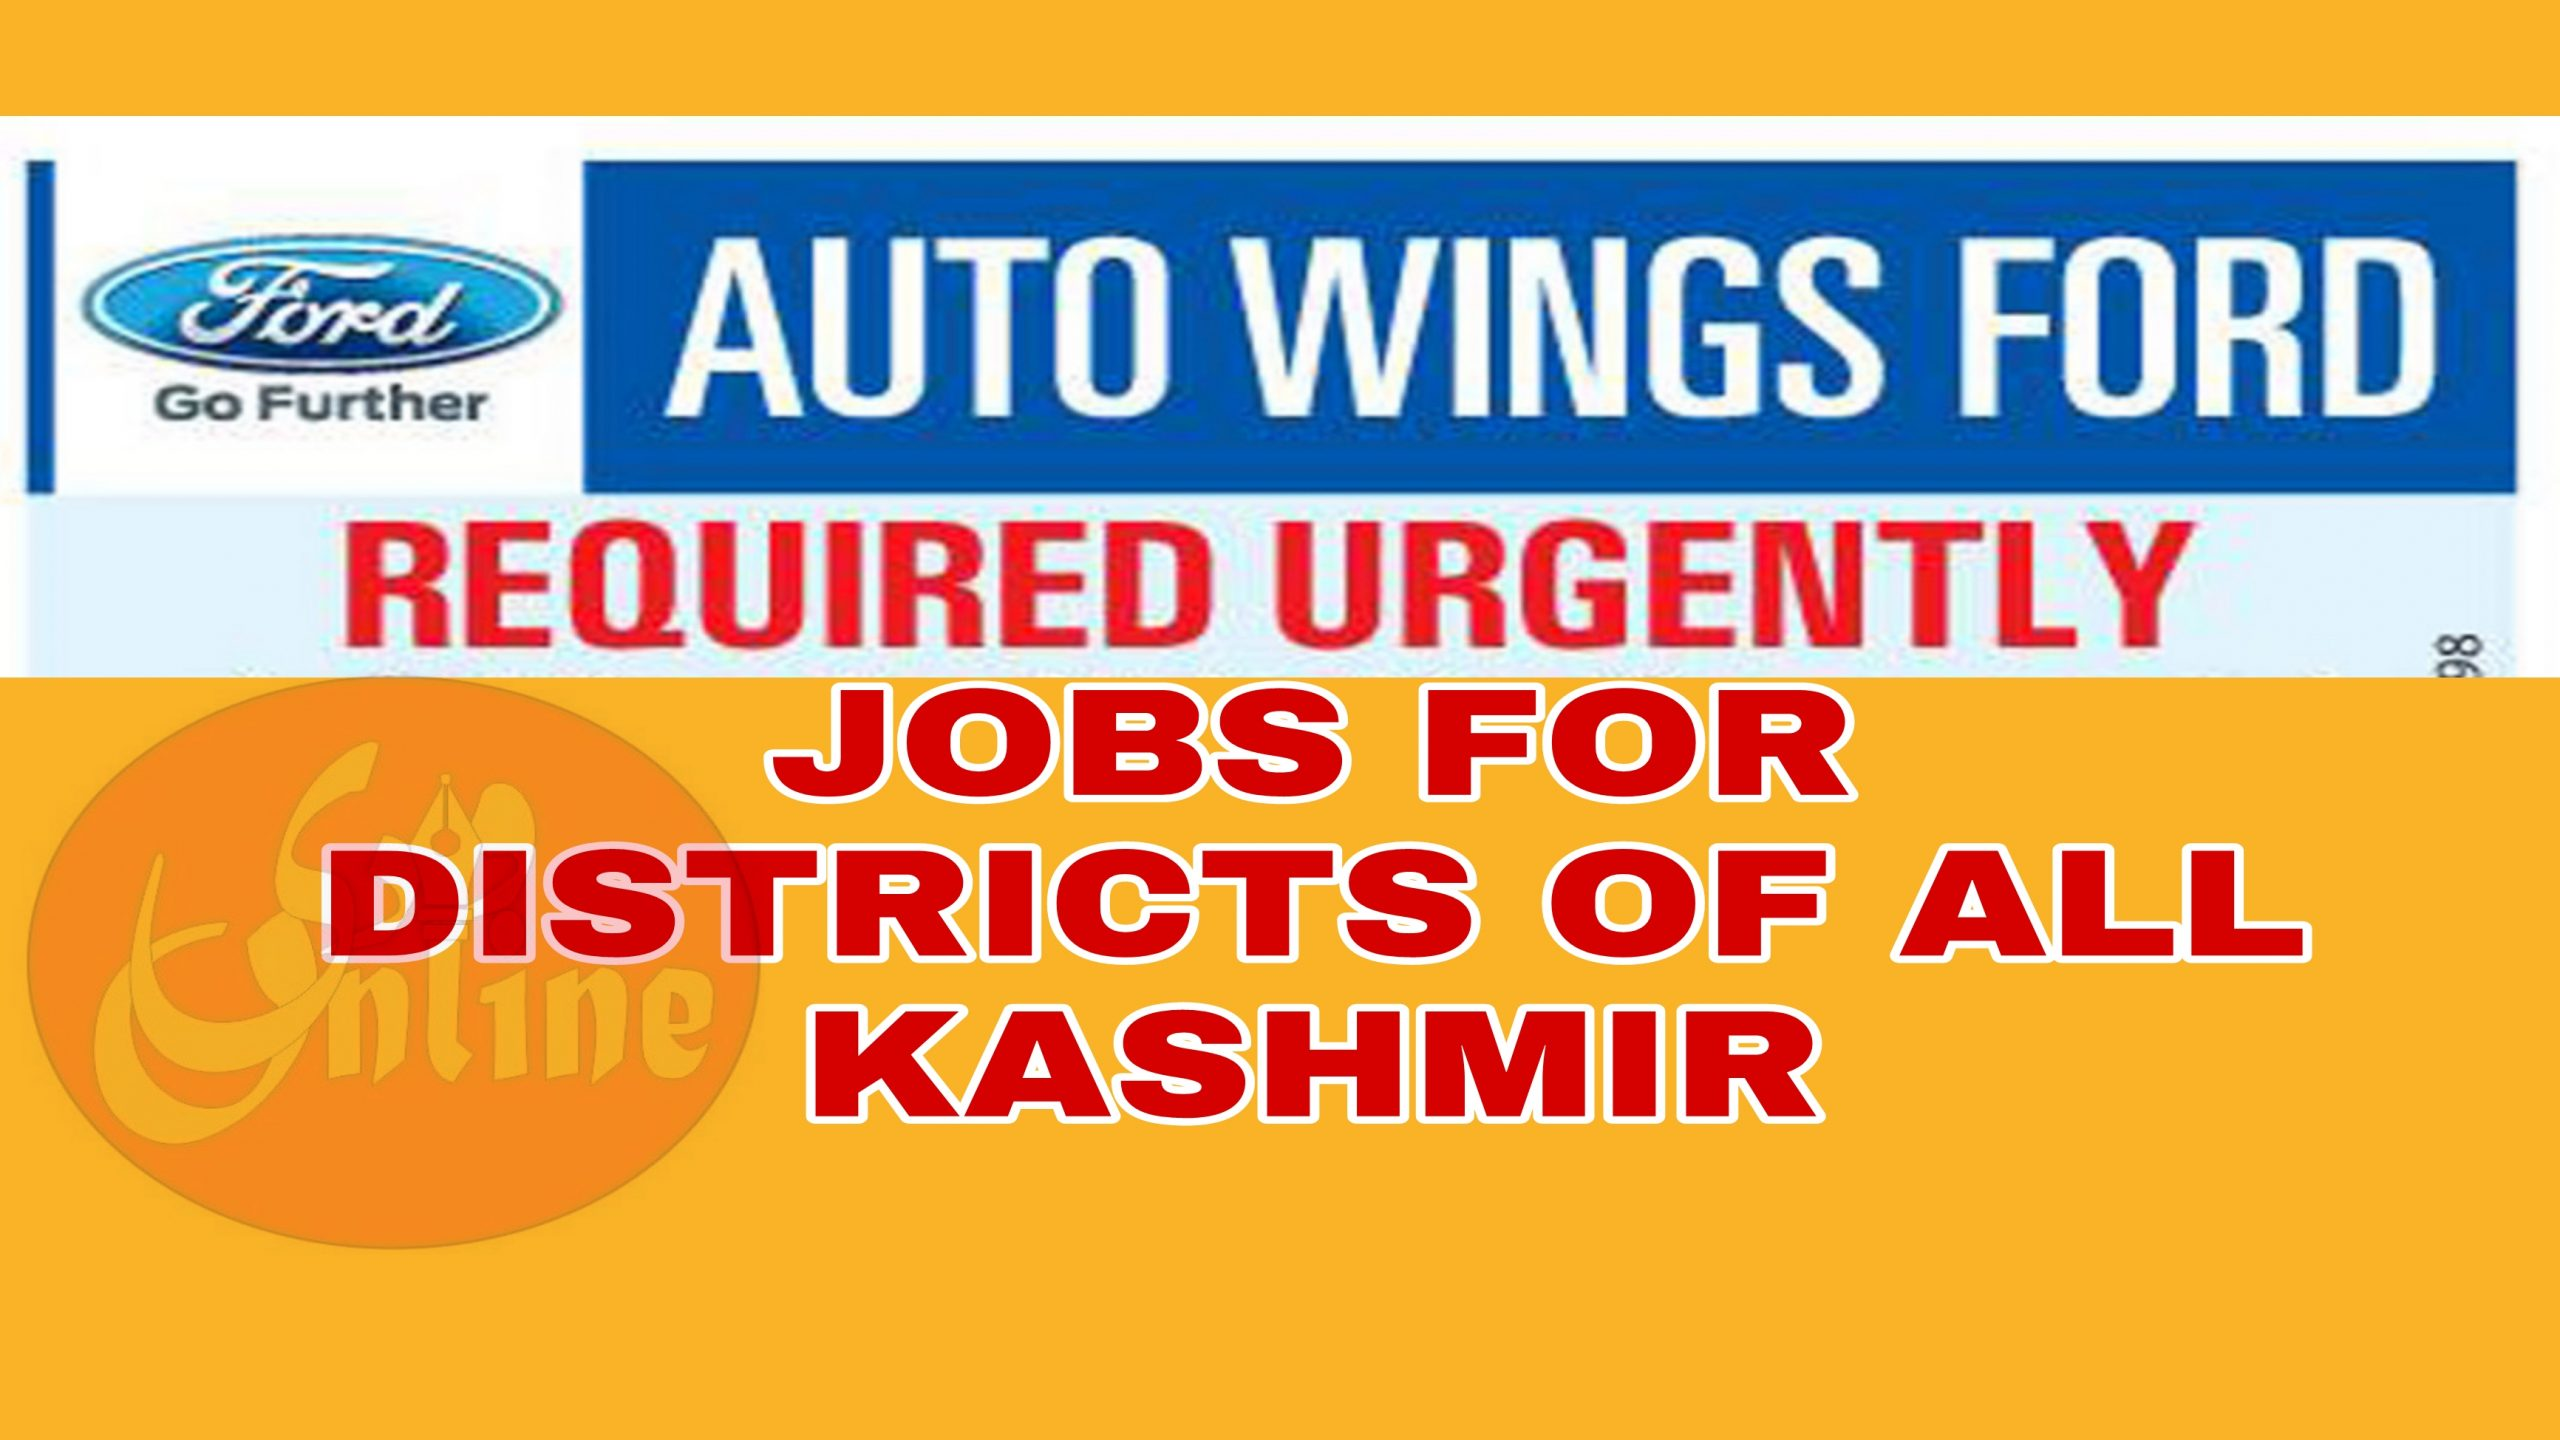 Private jobs in Kashmir districts 2021 auto wings ford srinagar Private jobs in Kashmir districts 2021 auto wings ford srinagar Latest Updates